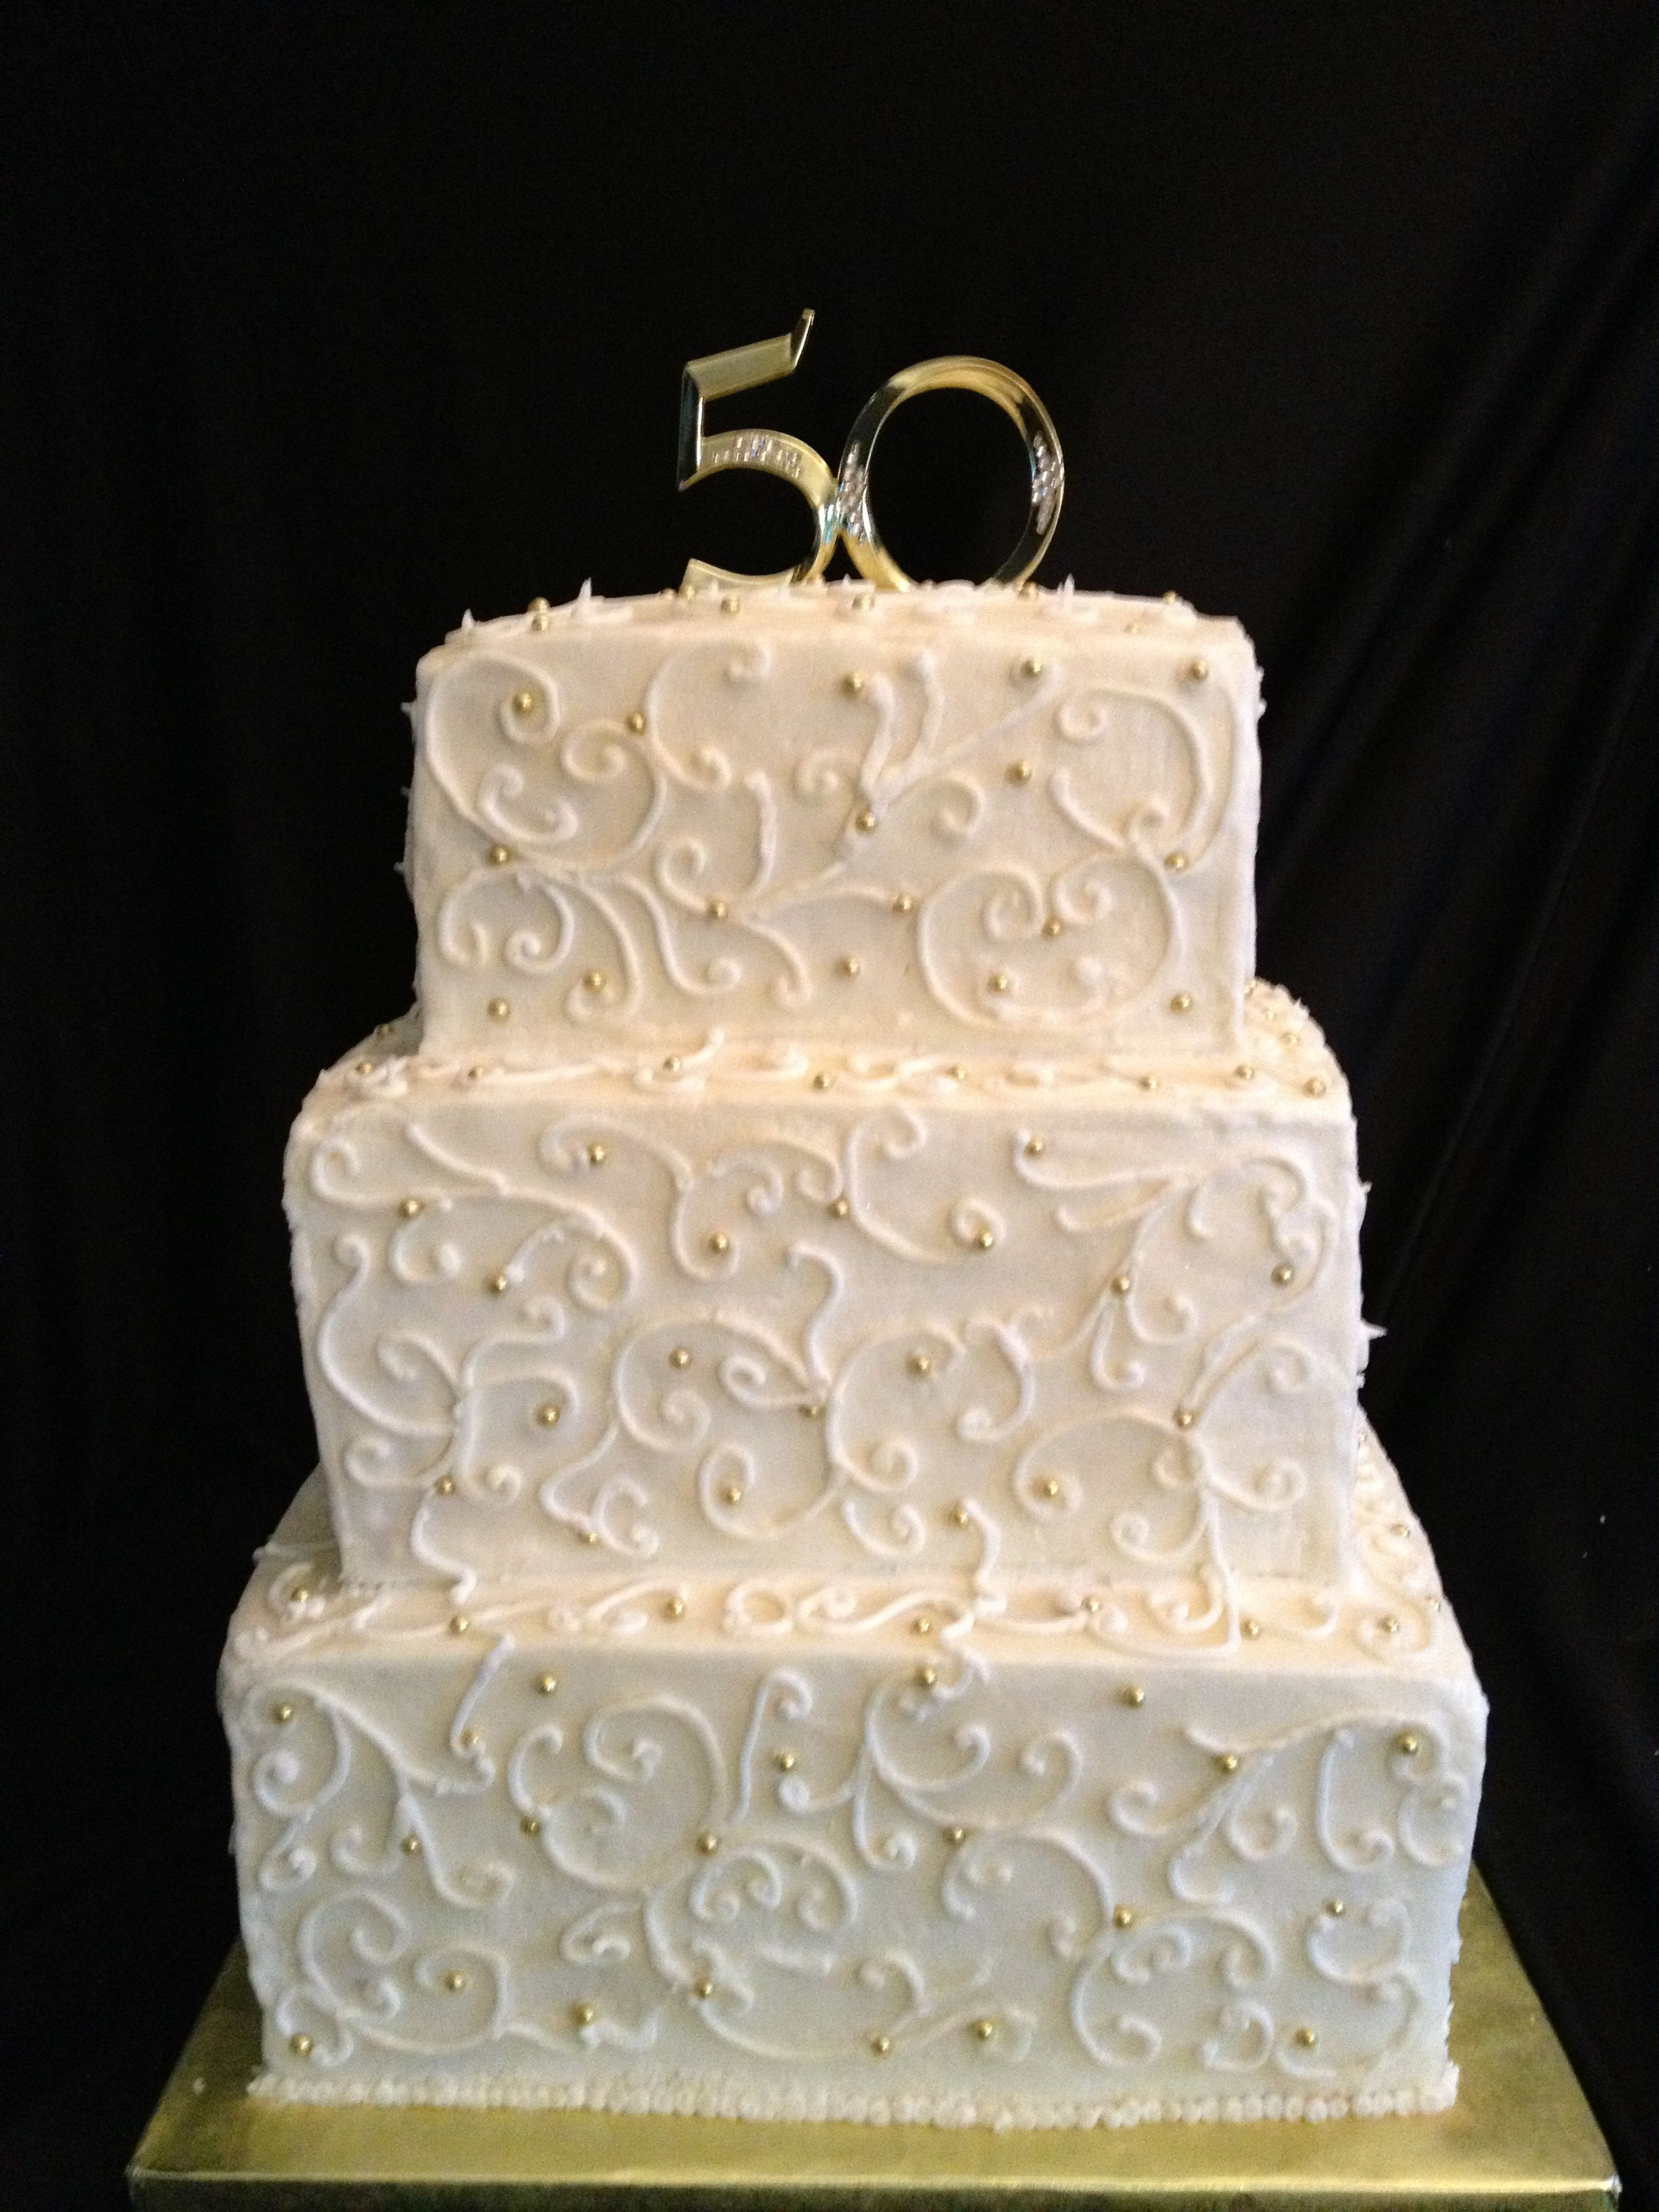 50th anniversary cake cake decorating ideas pinterest